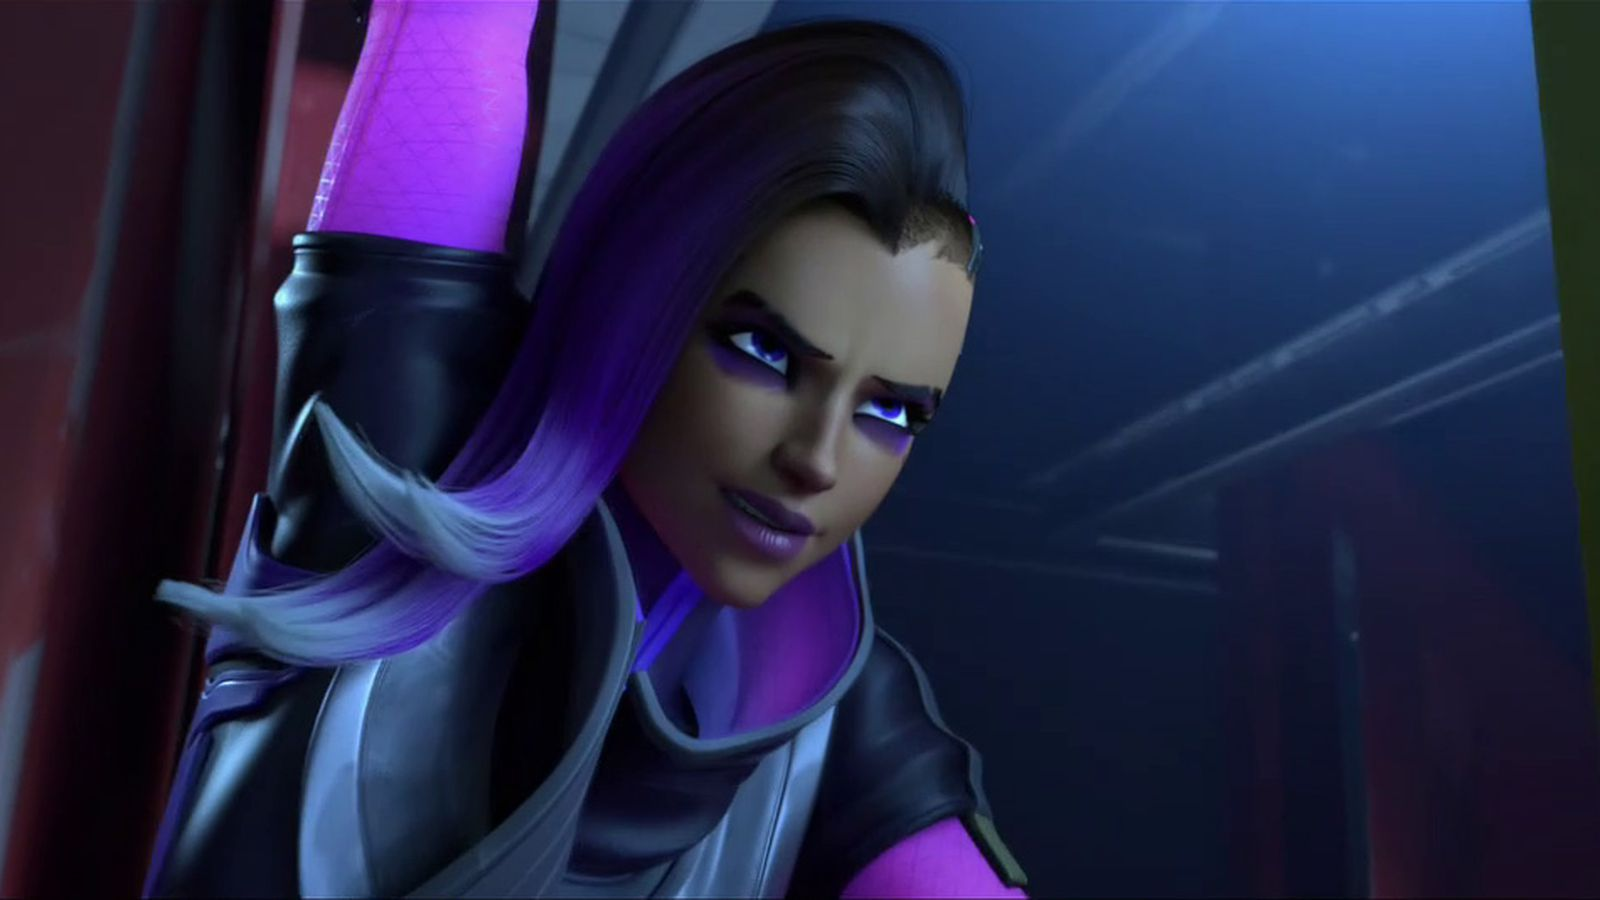 3d Moving Wallpaper Download For Windows 7 Overwatch S Sombra Reveal Trailer Debuts At Blizzcon Polygon